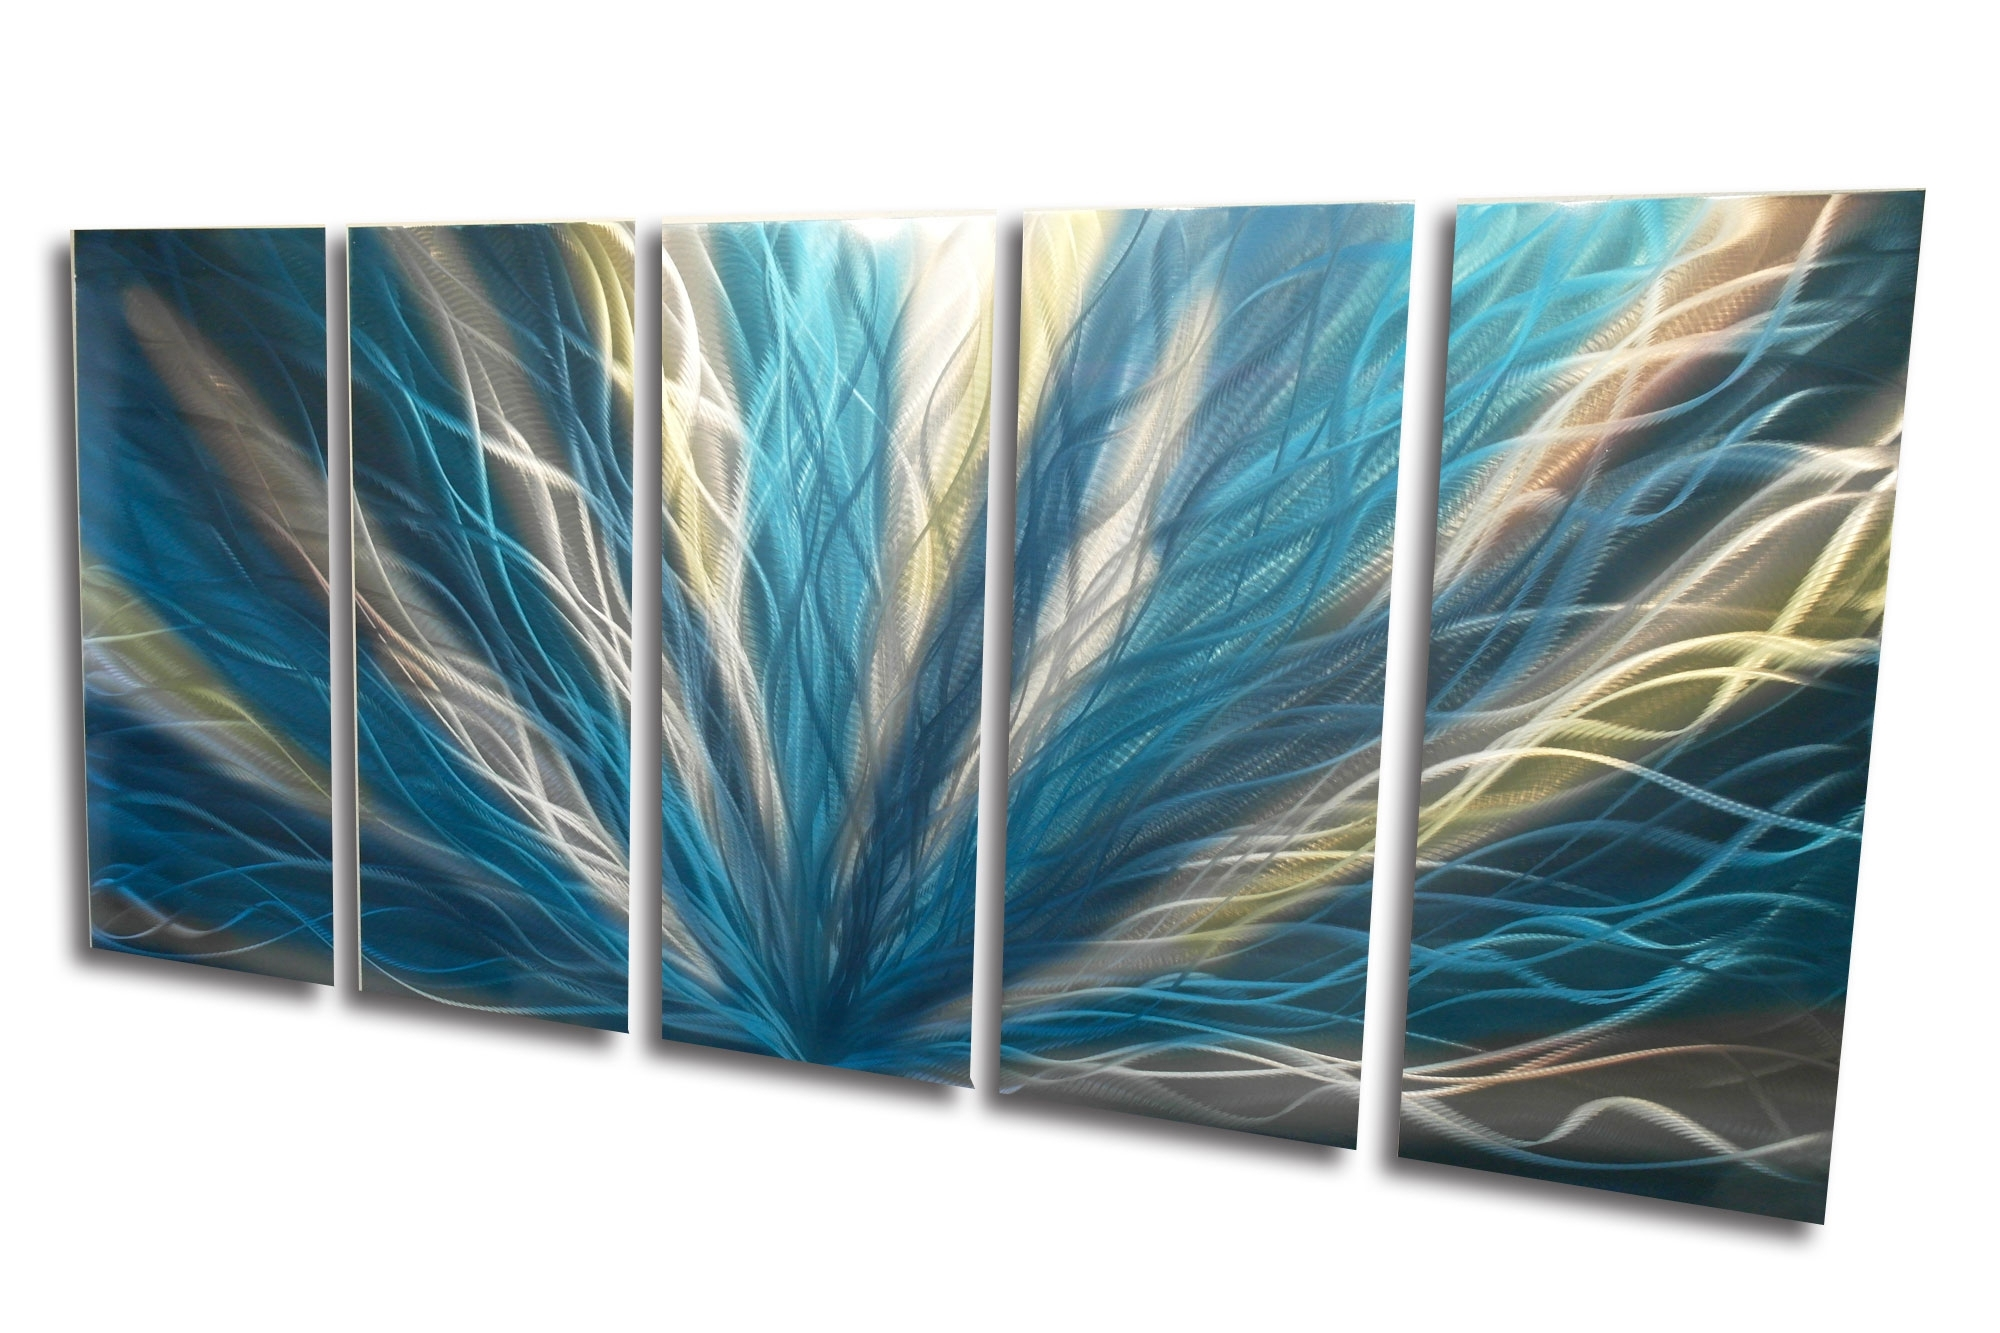 Preferred Radiance Teal 36X79 – Metal Wall Art Abstract Sculpture Modern With Regard To Abstract Leaves Wall Art (View 14 of 15)